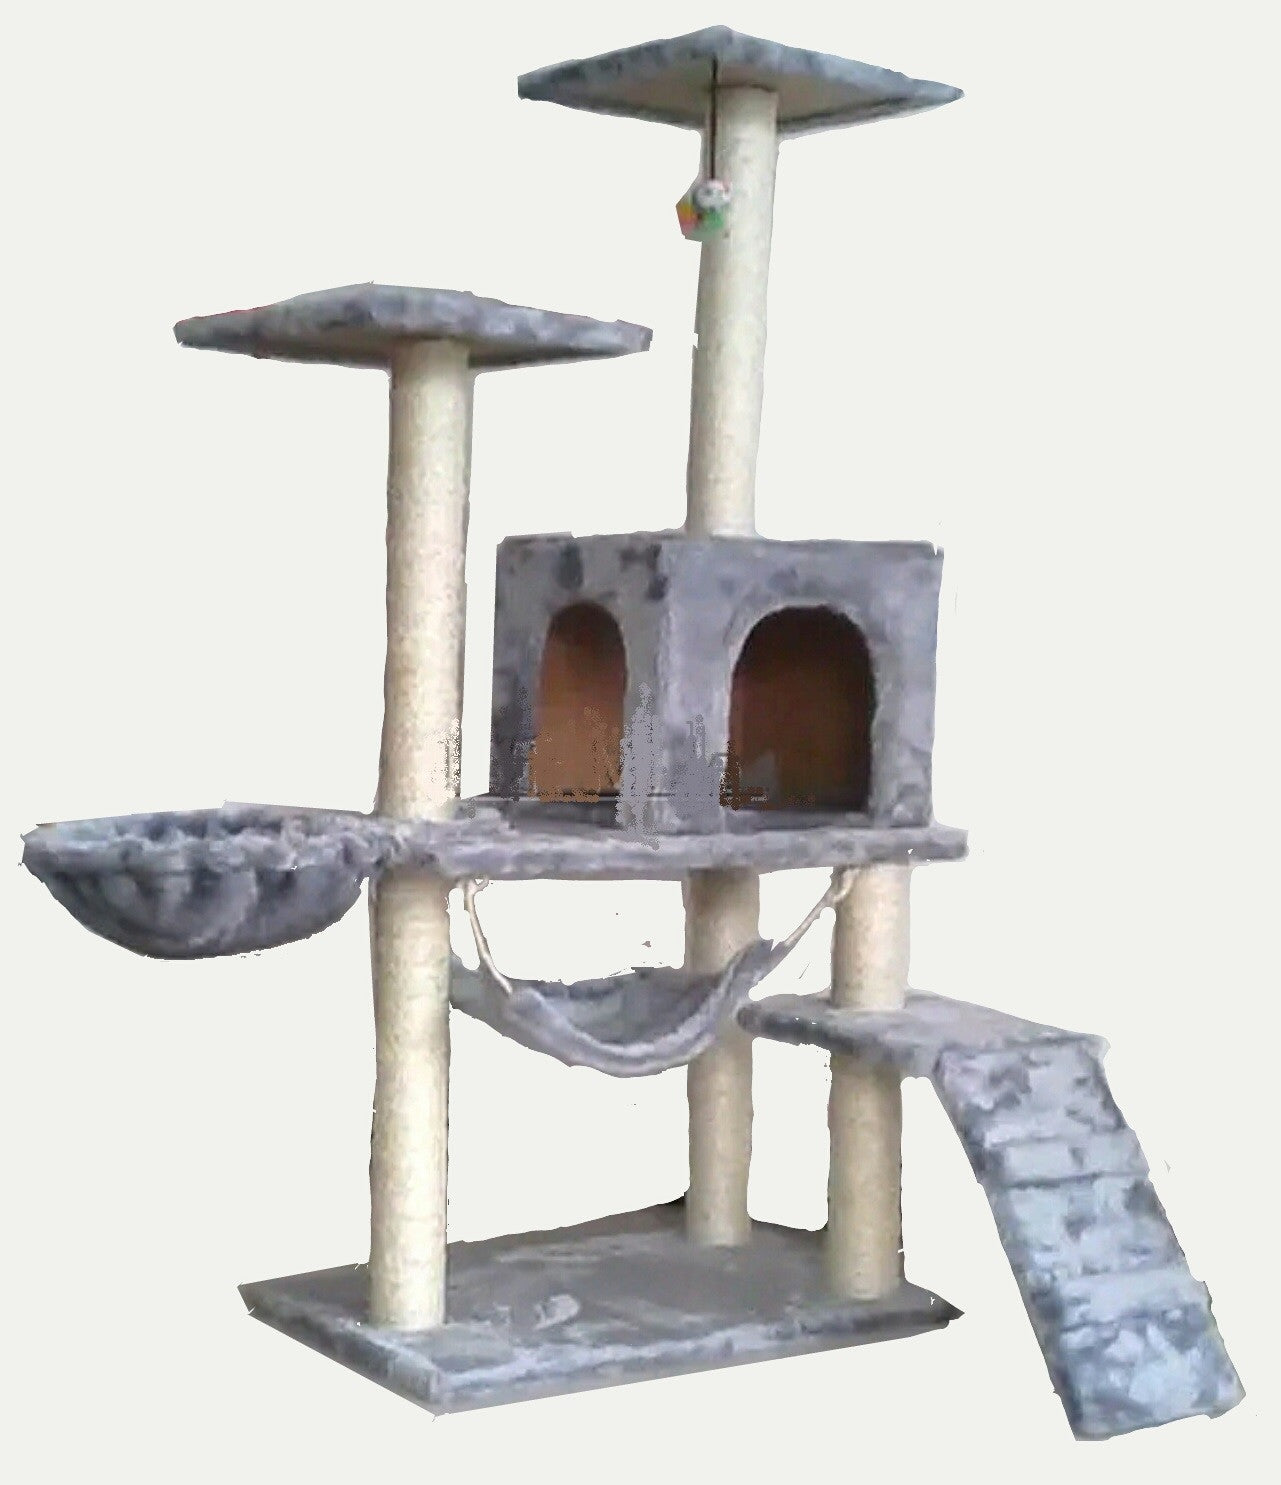 Cat Condo Cat Tree W/ Hammock Bowl   DDhouse Singapore Online Pet Supplies  And Pet